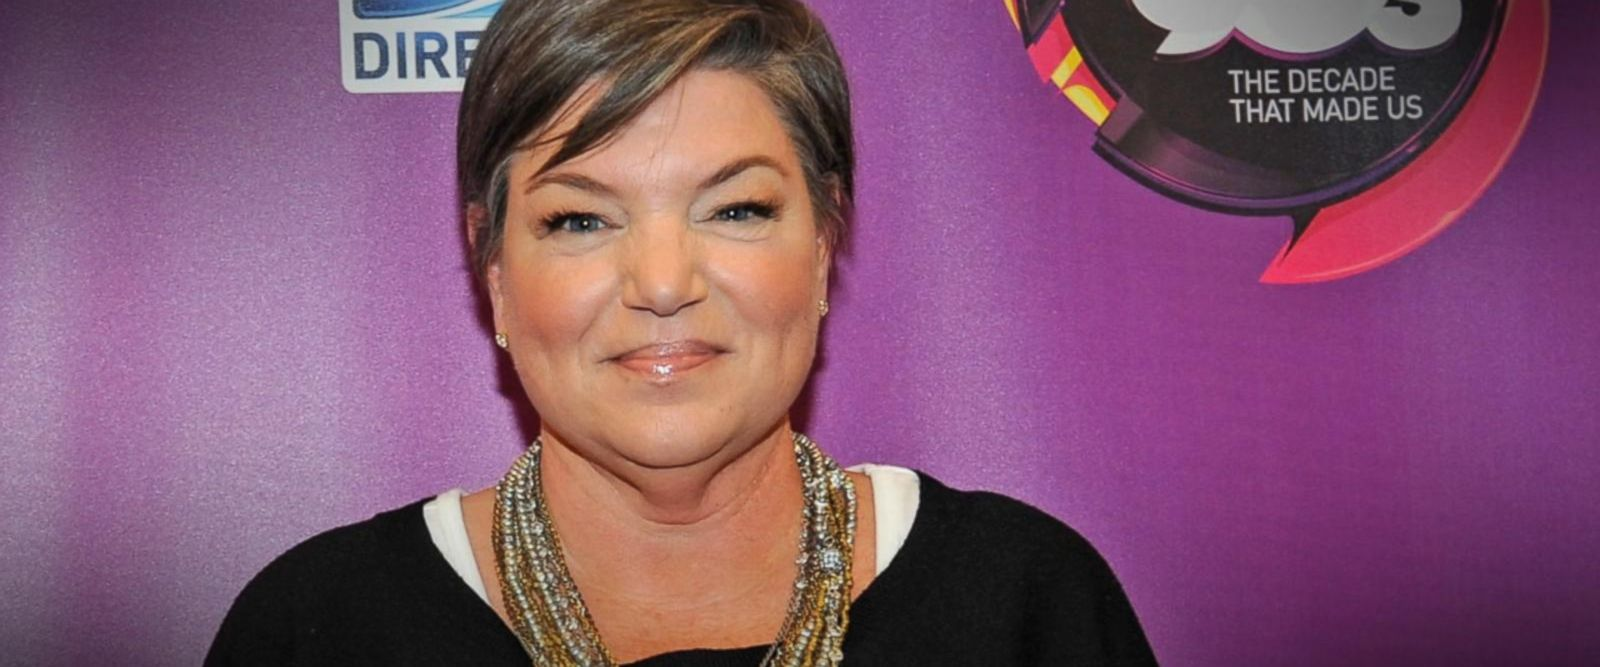 VIDEO: 'GMA' Hot List: 'The Facts of Life' star Mindy Cohn reveals breast cancer battle